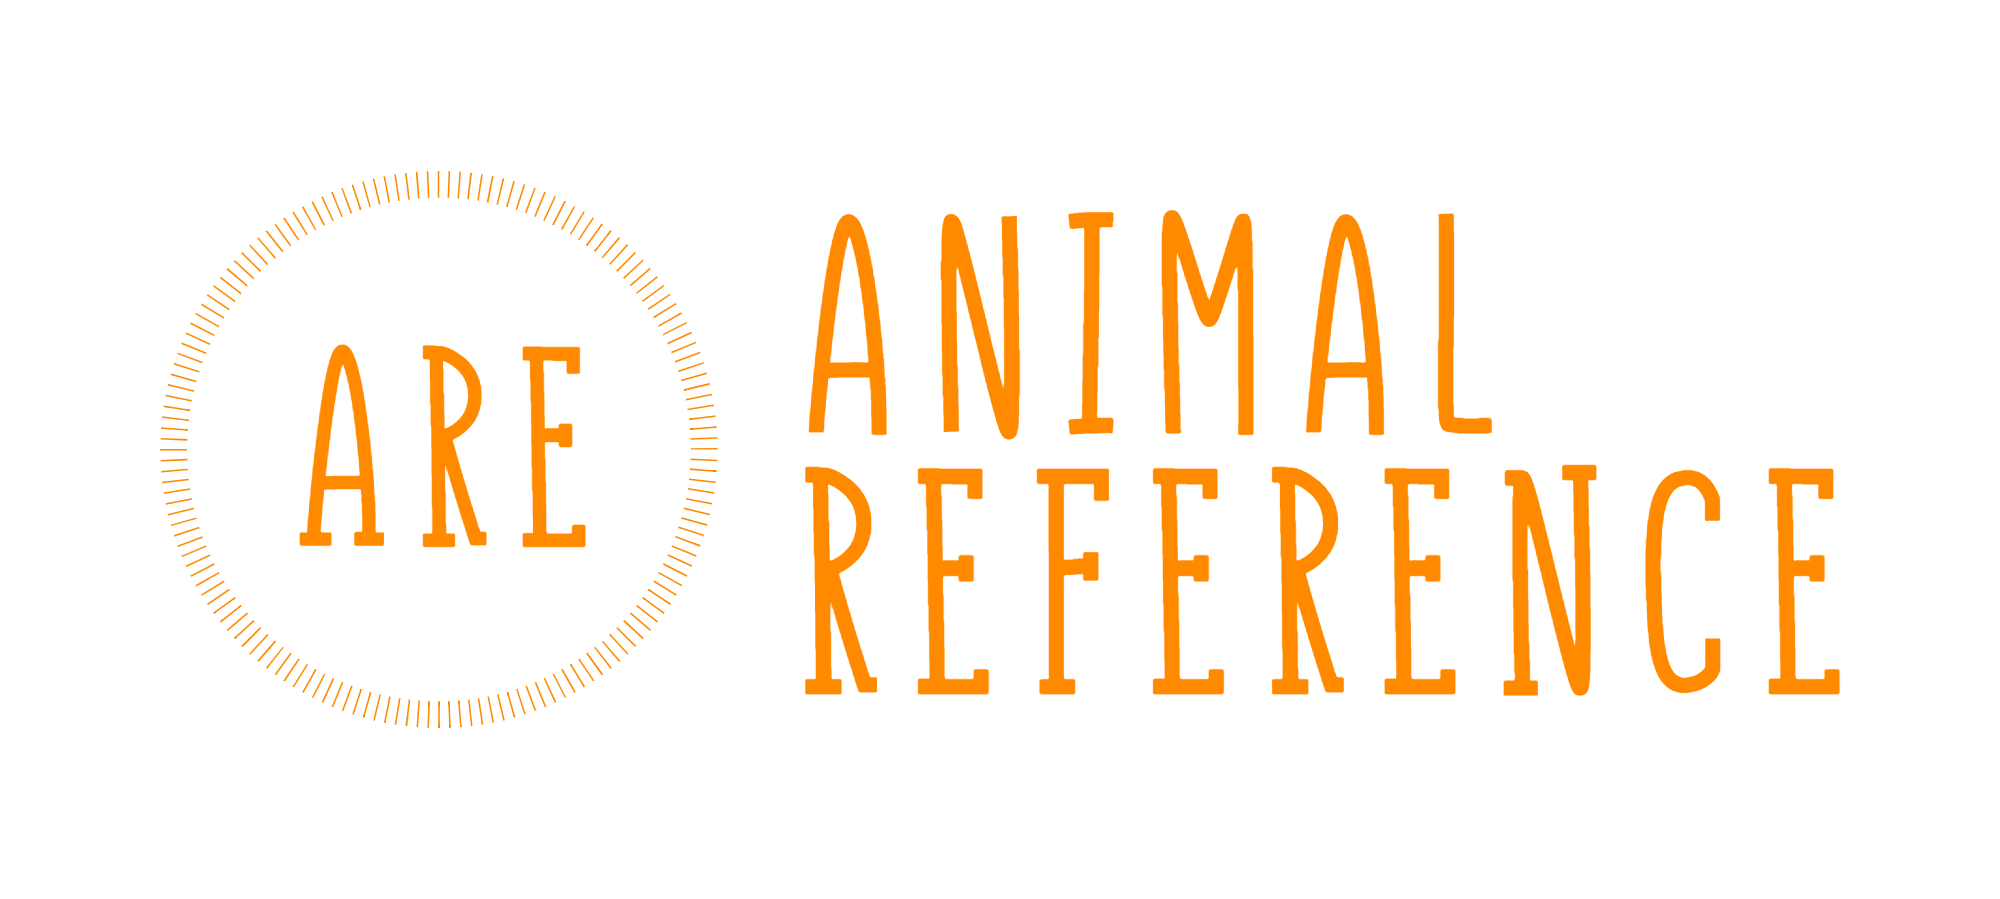 Animal Referance Association